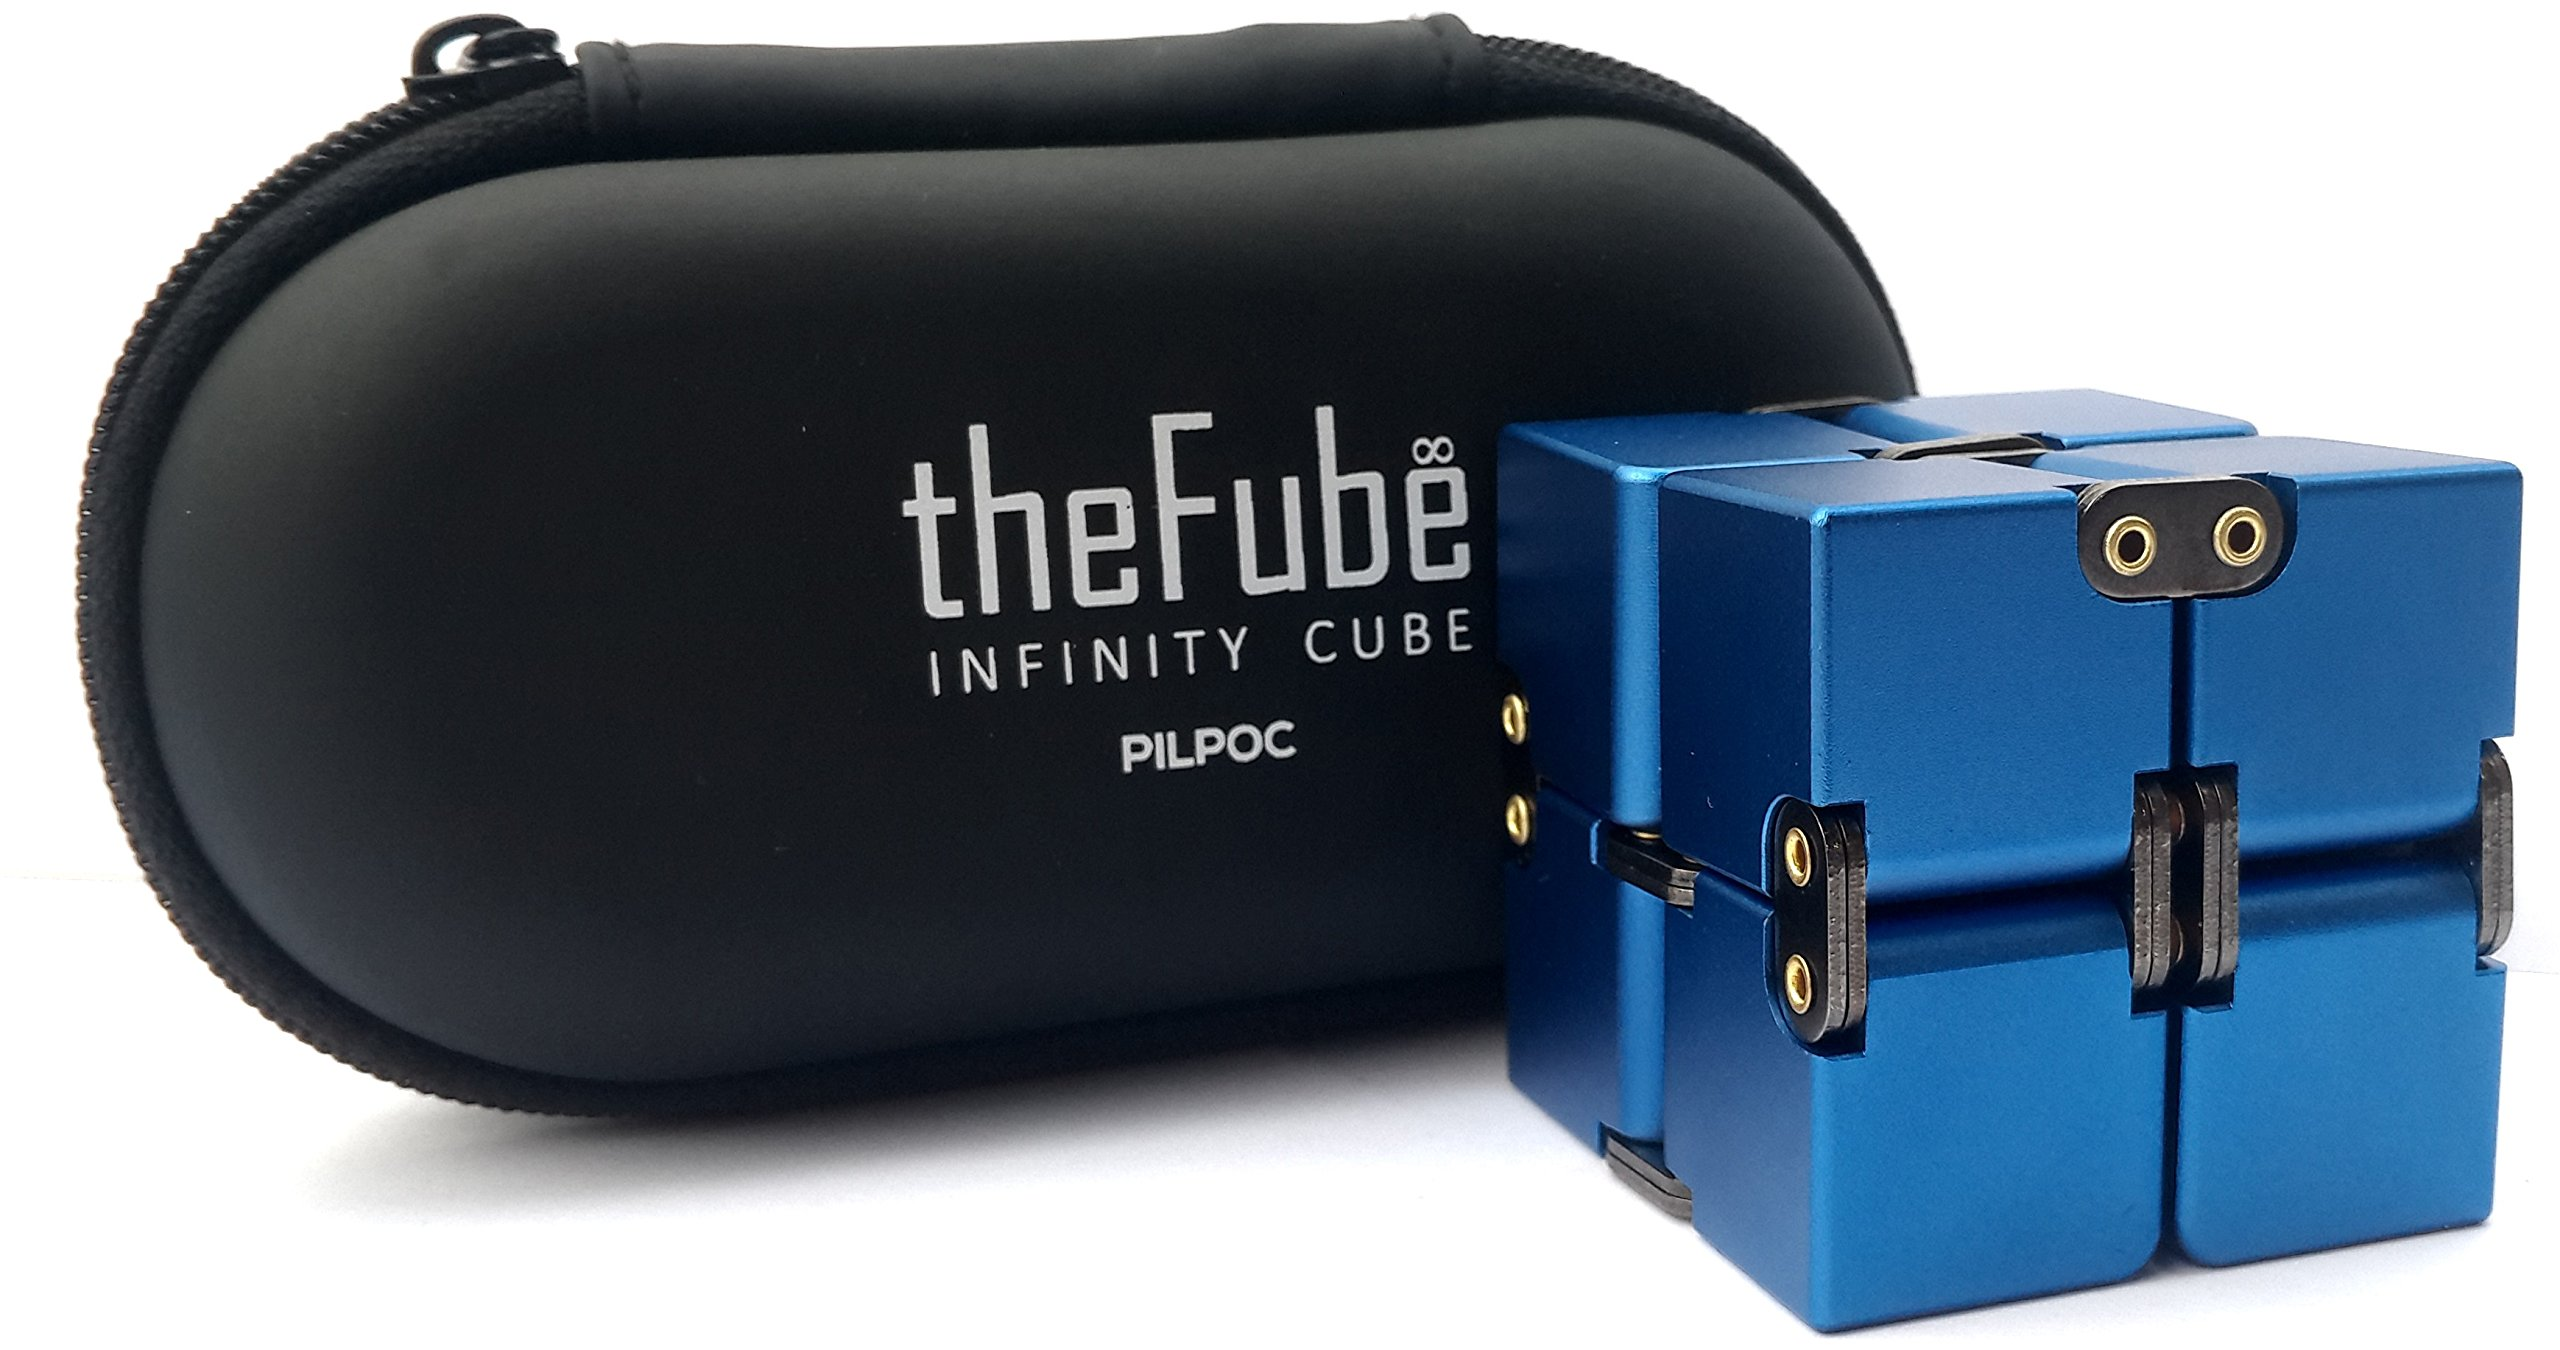 PILPOC theFube Fidget Cube Infinity Cube Desk Toy - Premium Quality Aluminum Infinite Magic Cube with Exclusive Case, Sturdy, Heavy, Relieve Stress and Anxiety, for ADD, ADHD, OCD (Blue) by PILPOC